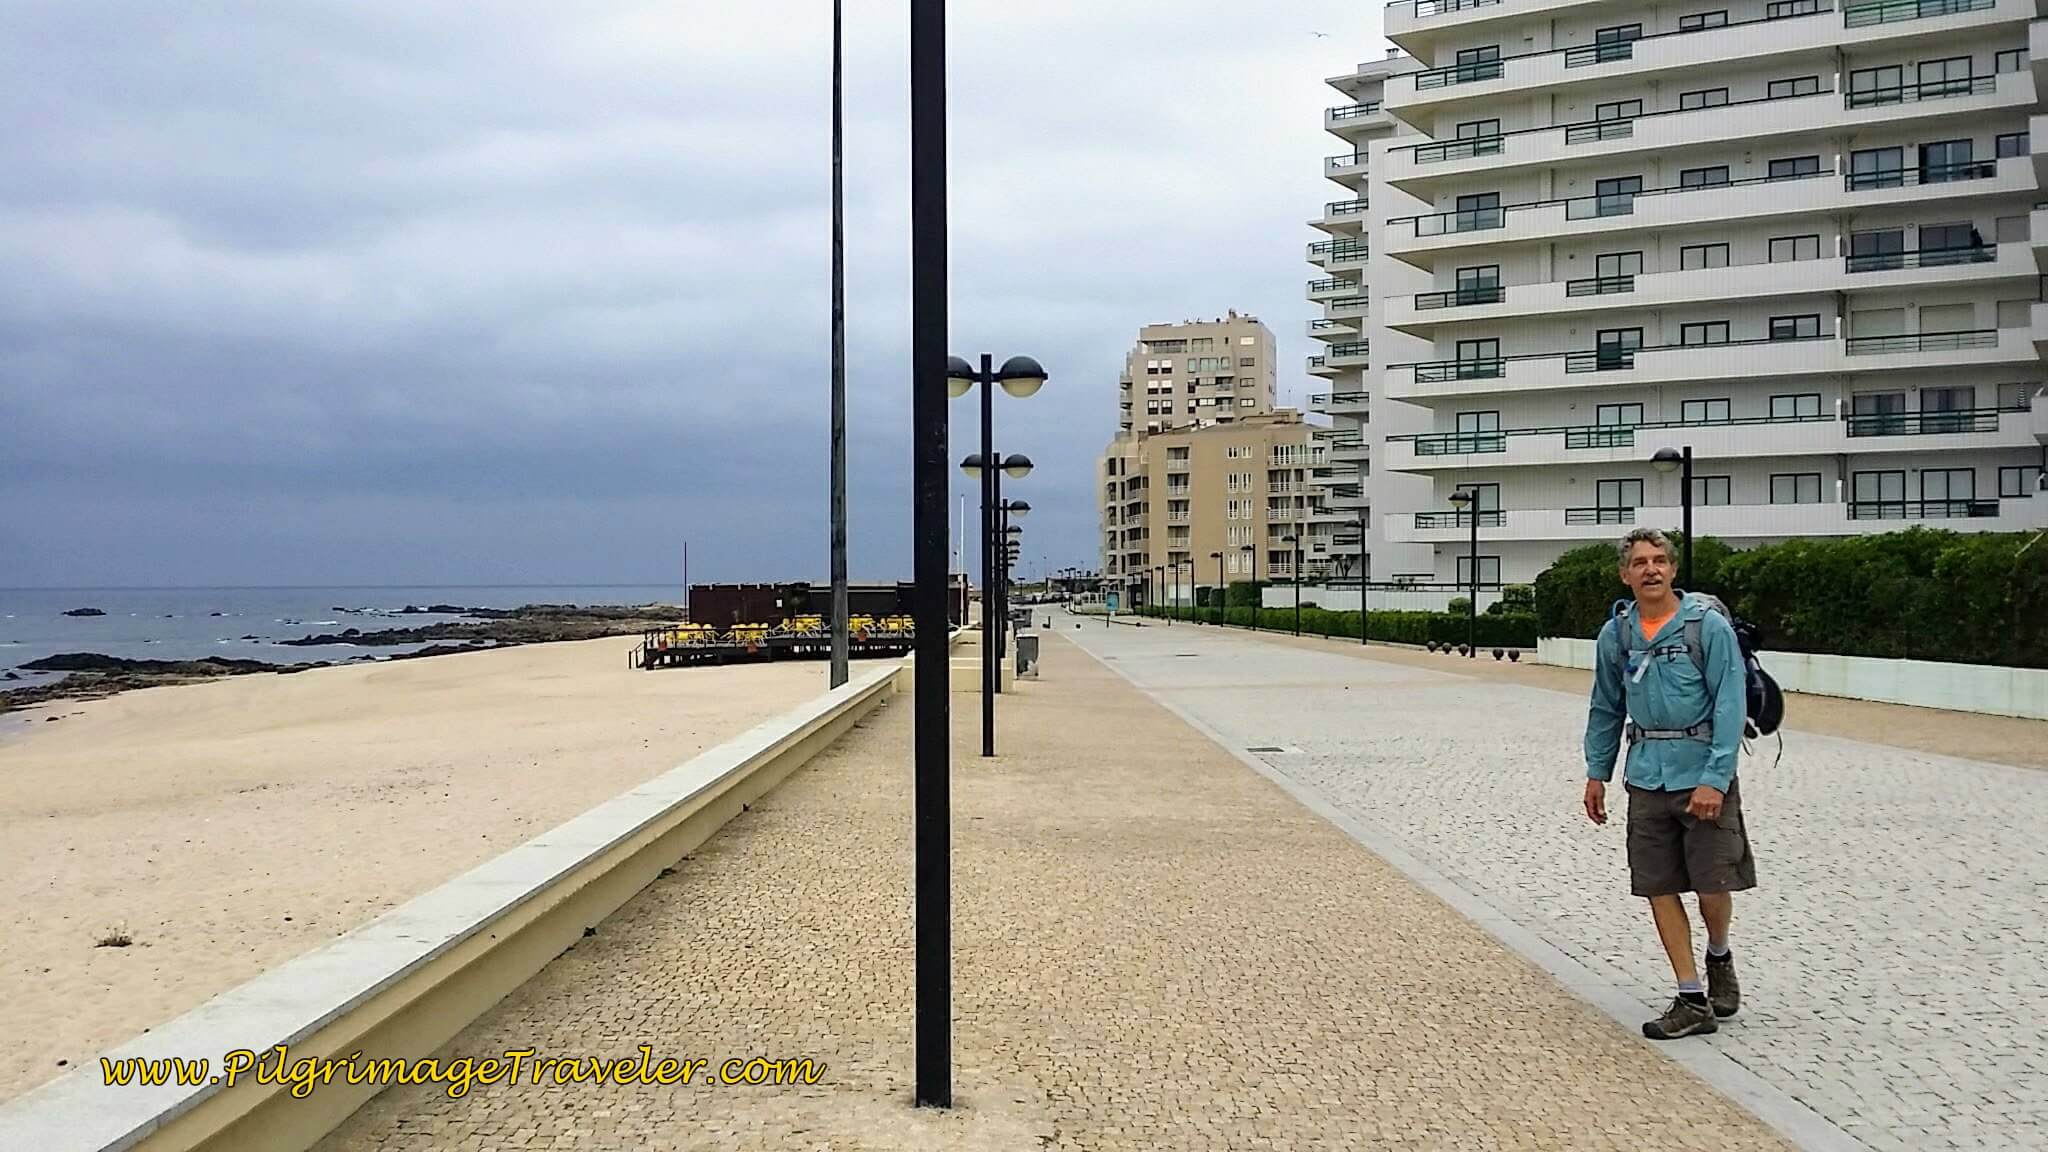 Rich on the Avenida dos Pescadores at the Praia Lagoa on day sixteen of the Camino Portugués on the Coastal Route